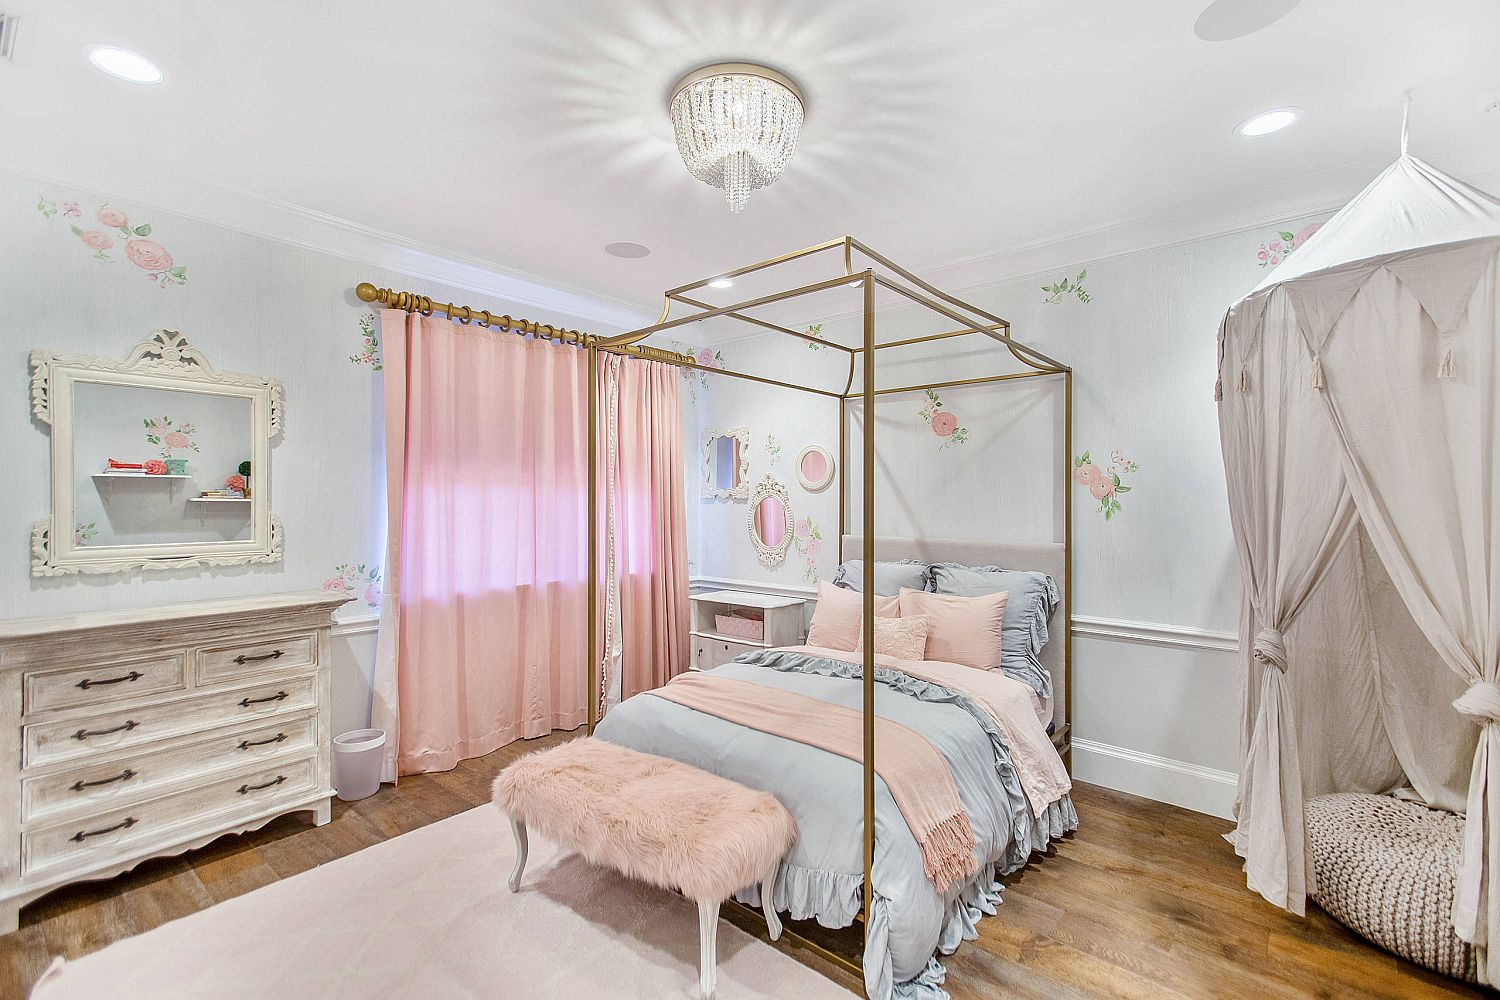 Pastel pinks and blues along with lovely prints add color to the delightful shabby chic bedroom